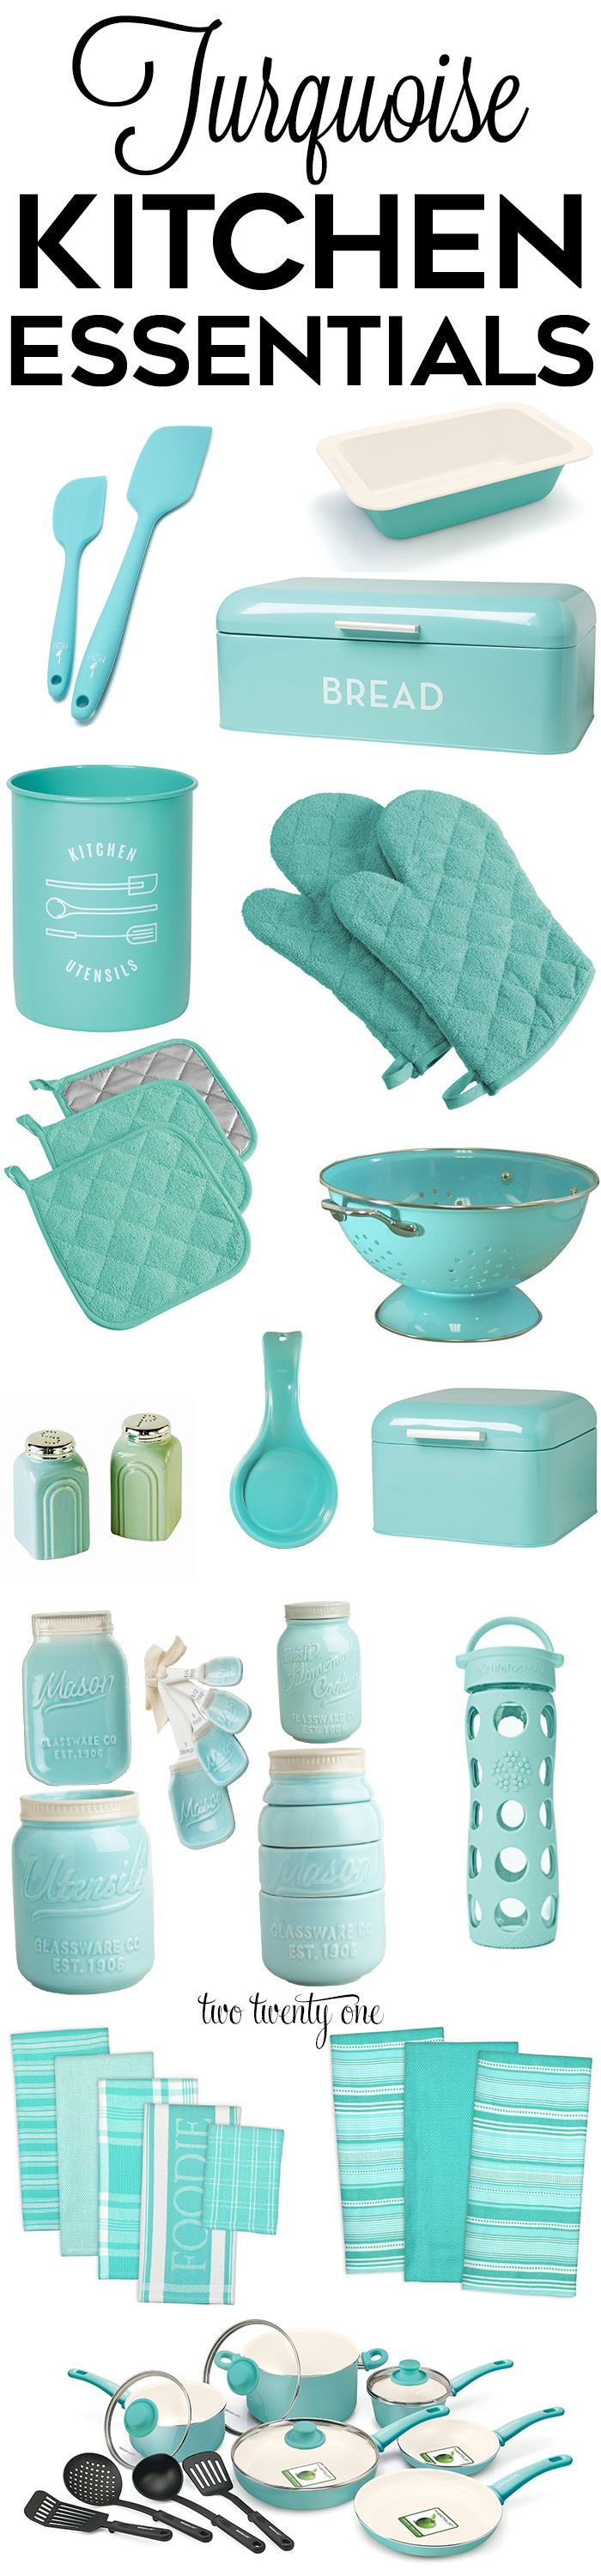 Turquoise Kitchen Decor & Appliances | ! Two Twenty One | Projects ...